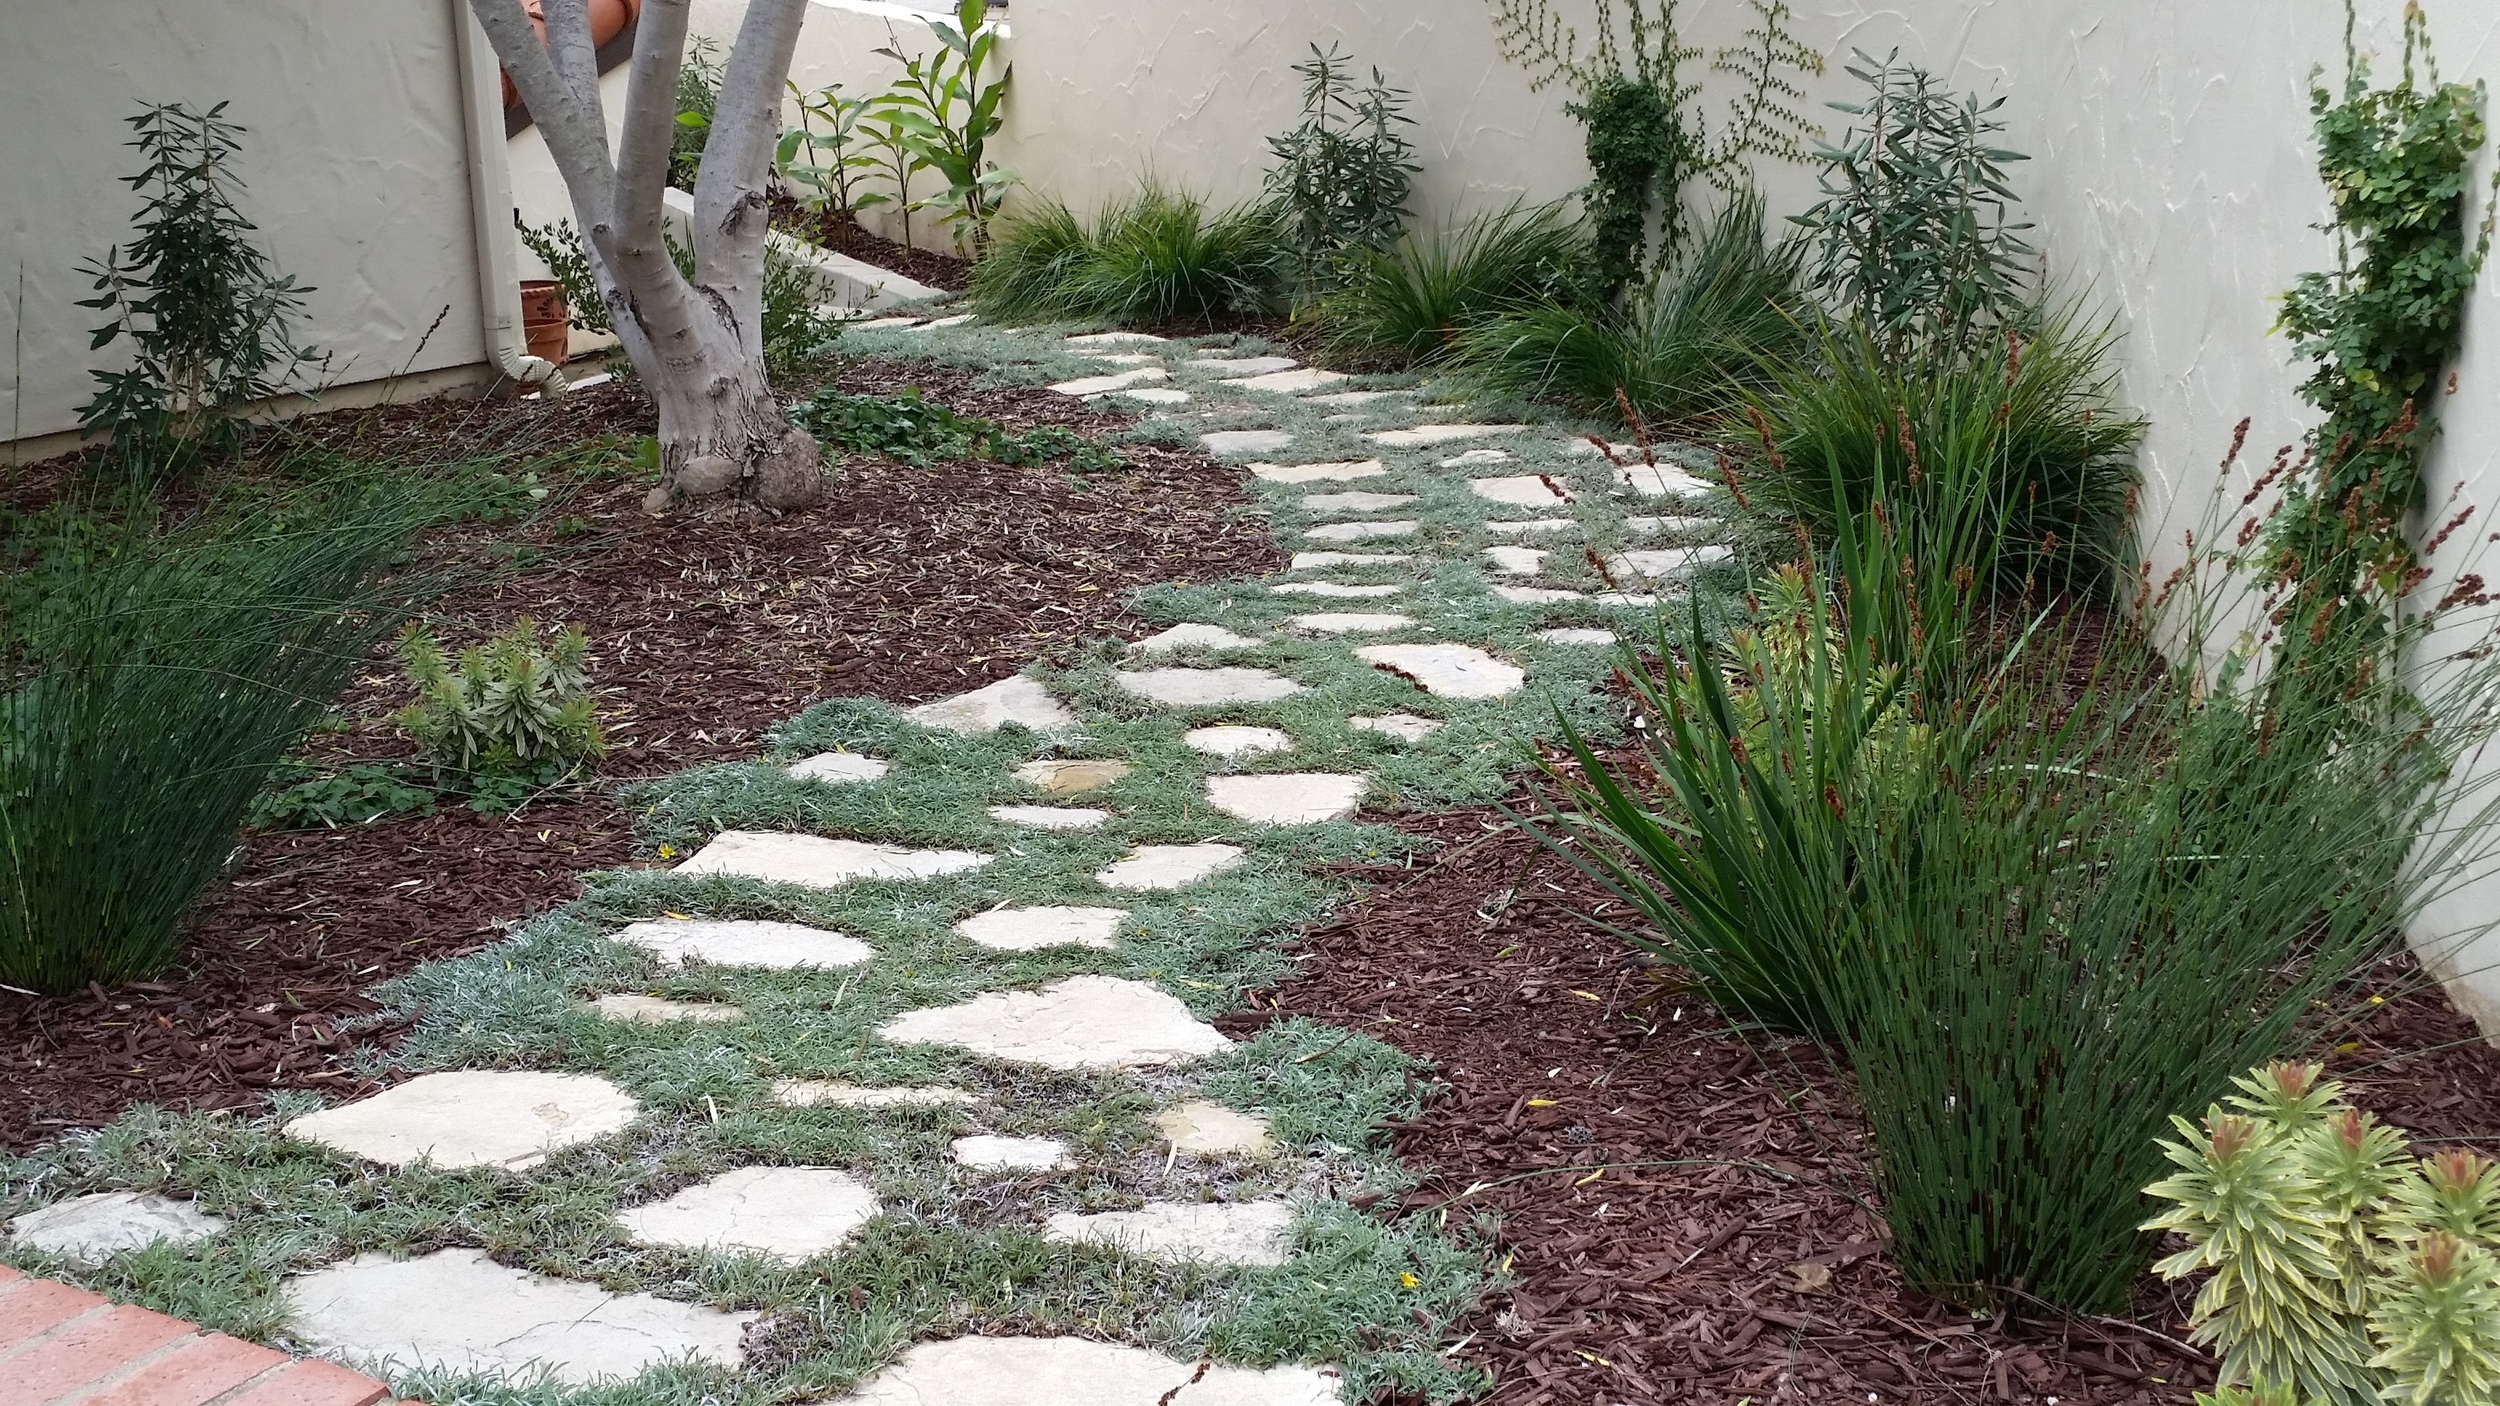 Flagstone Path with Planted Grout